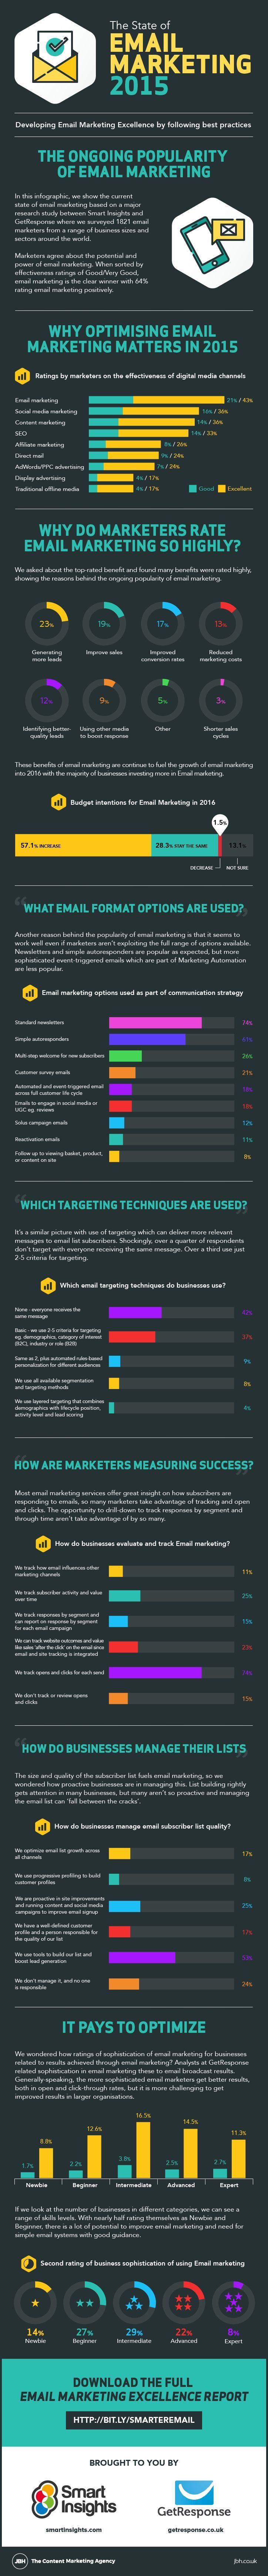 What is the current state of #EmailMarketing? - #infographic  More ideas at http://www.brightpreneur.com